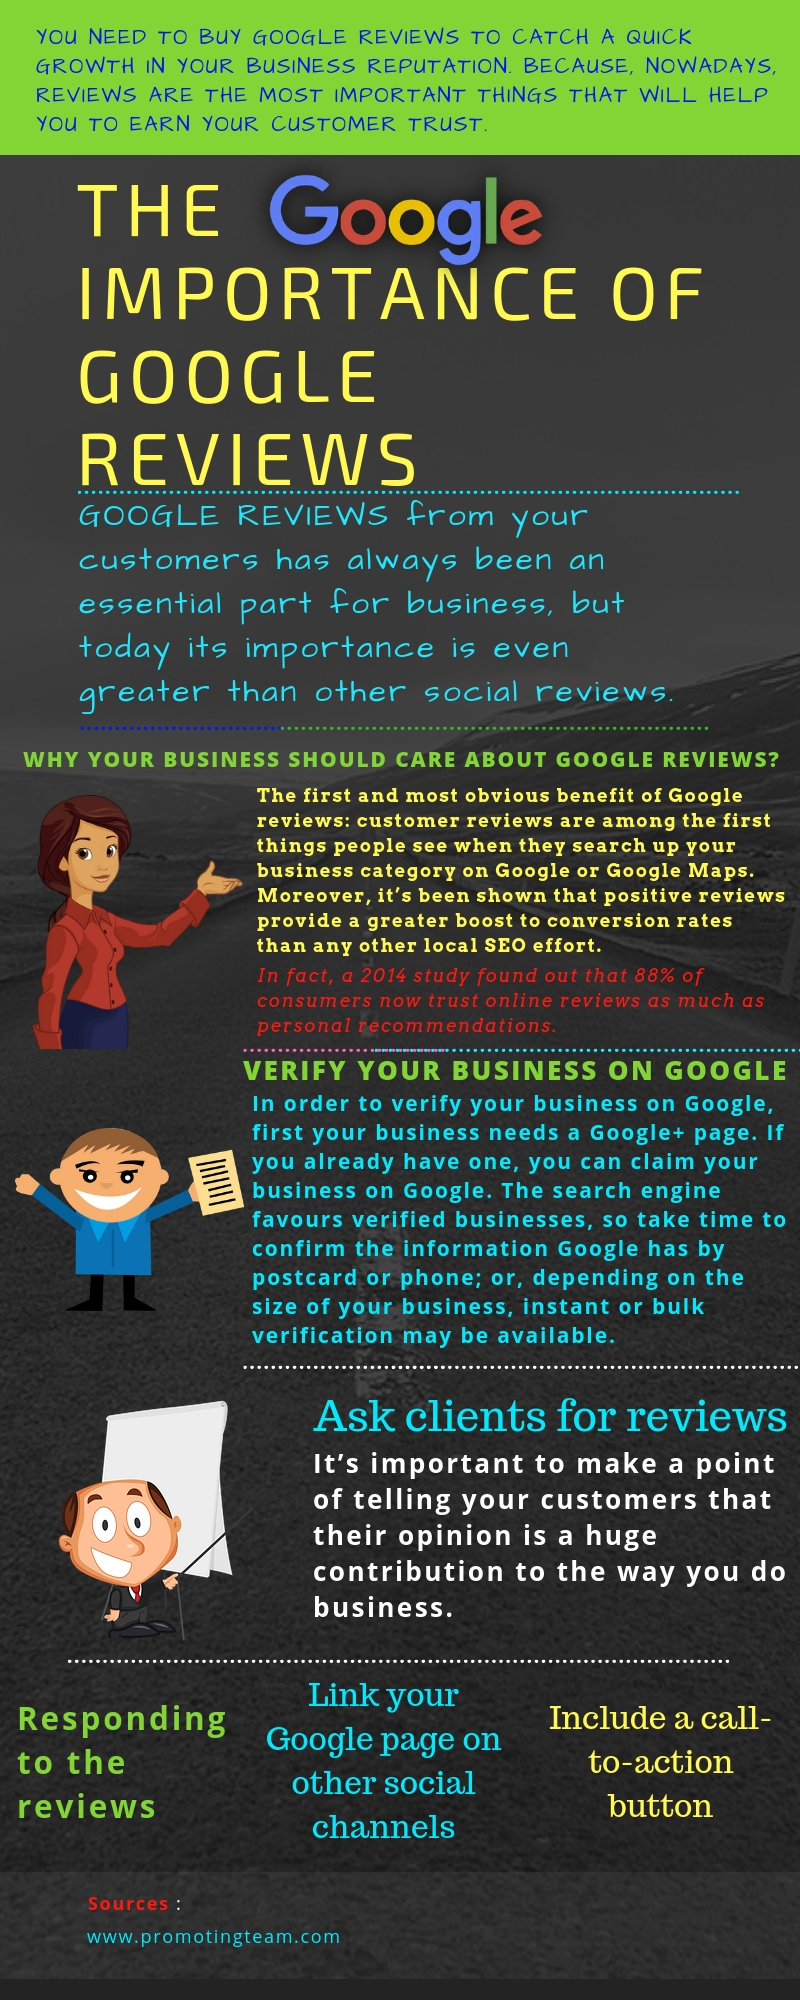 The Importance of Google Reviews by PaulJHardwick on DeviantArt